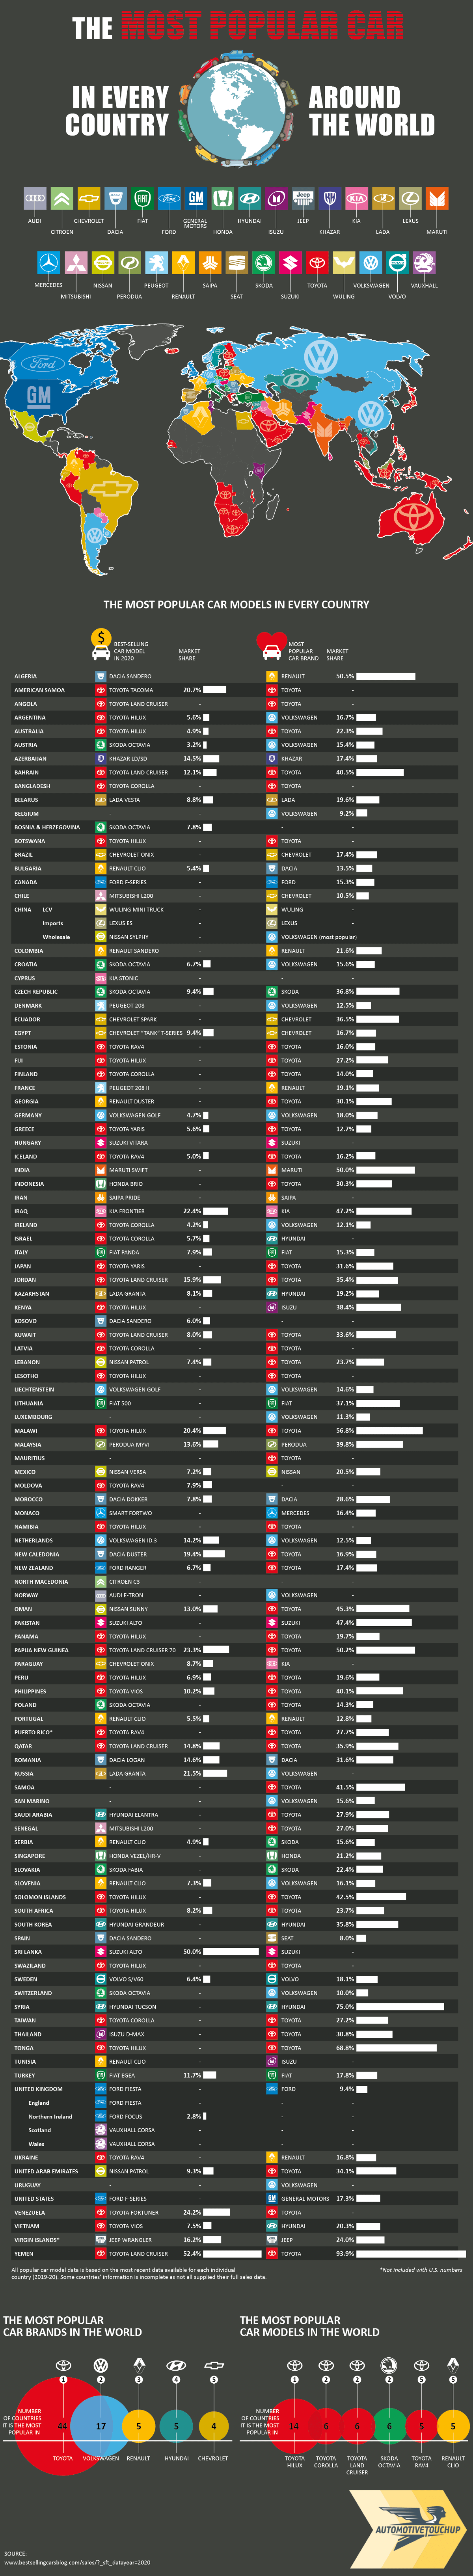 The Most Popular Car Brand in Every Country Around the World